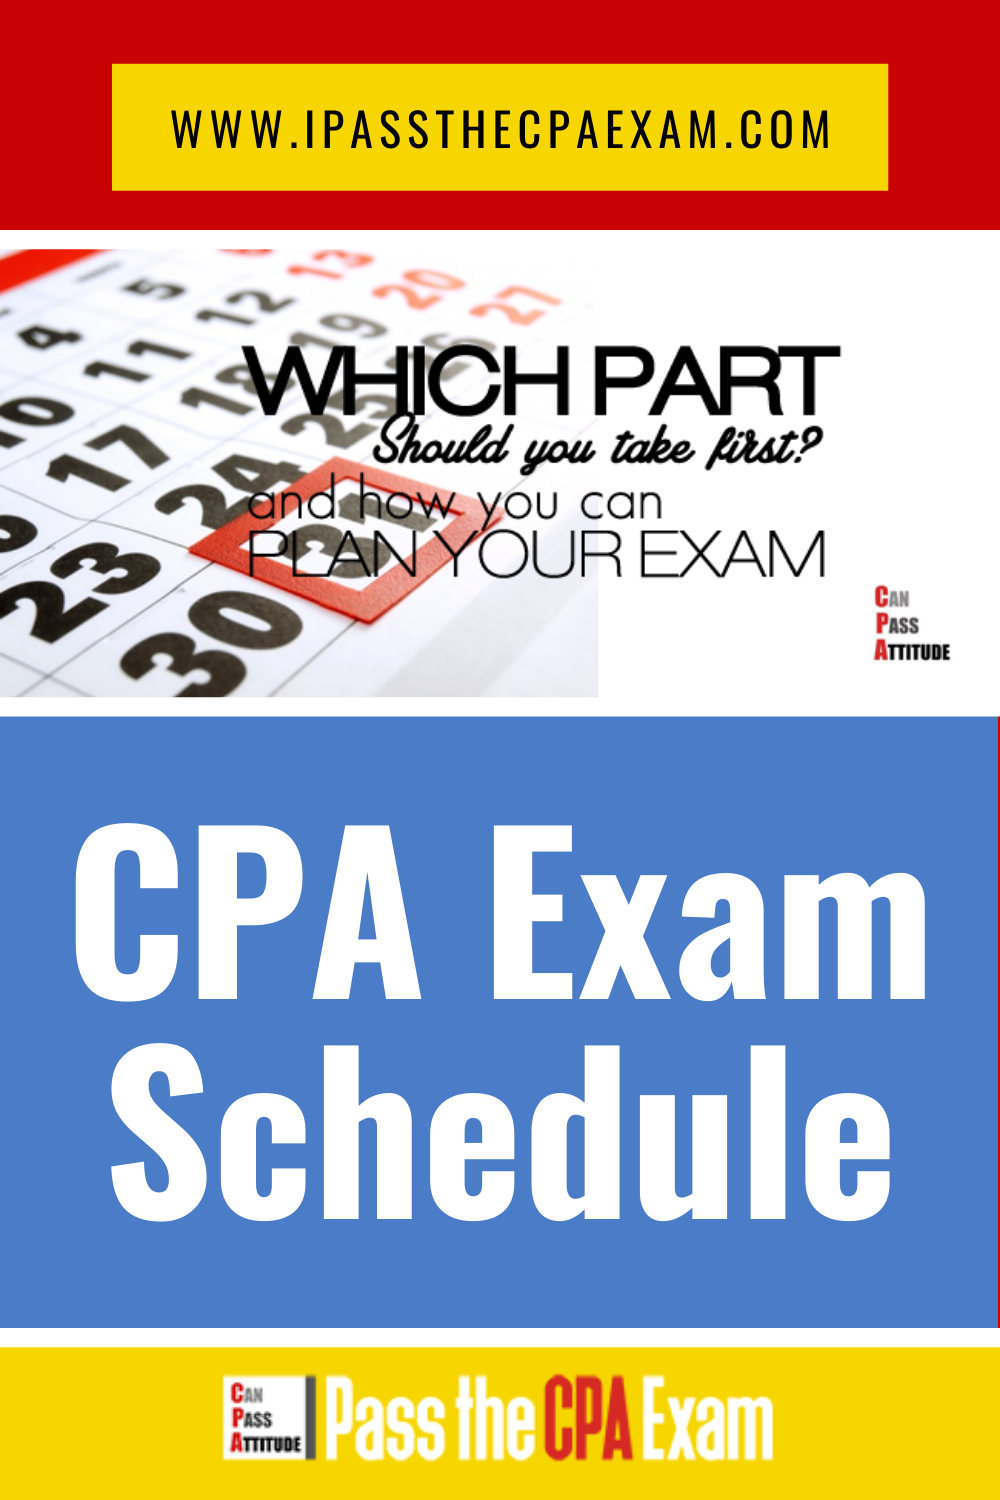 CPA Exam Schedule: How to Make Your CPA Exam Schedule in 2020 | Exam  schedule, Cpa exam, Cpa exam studying